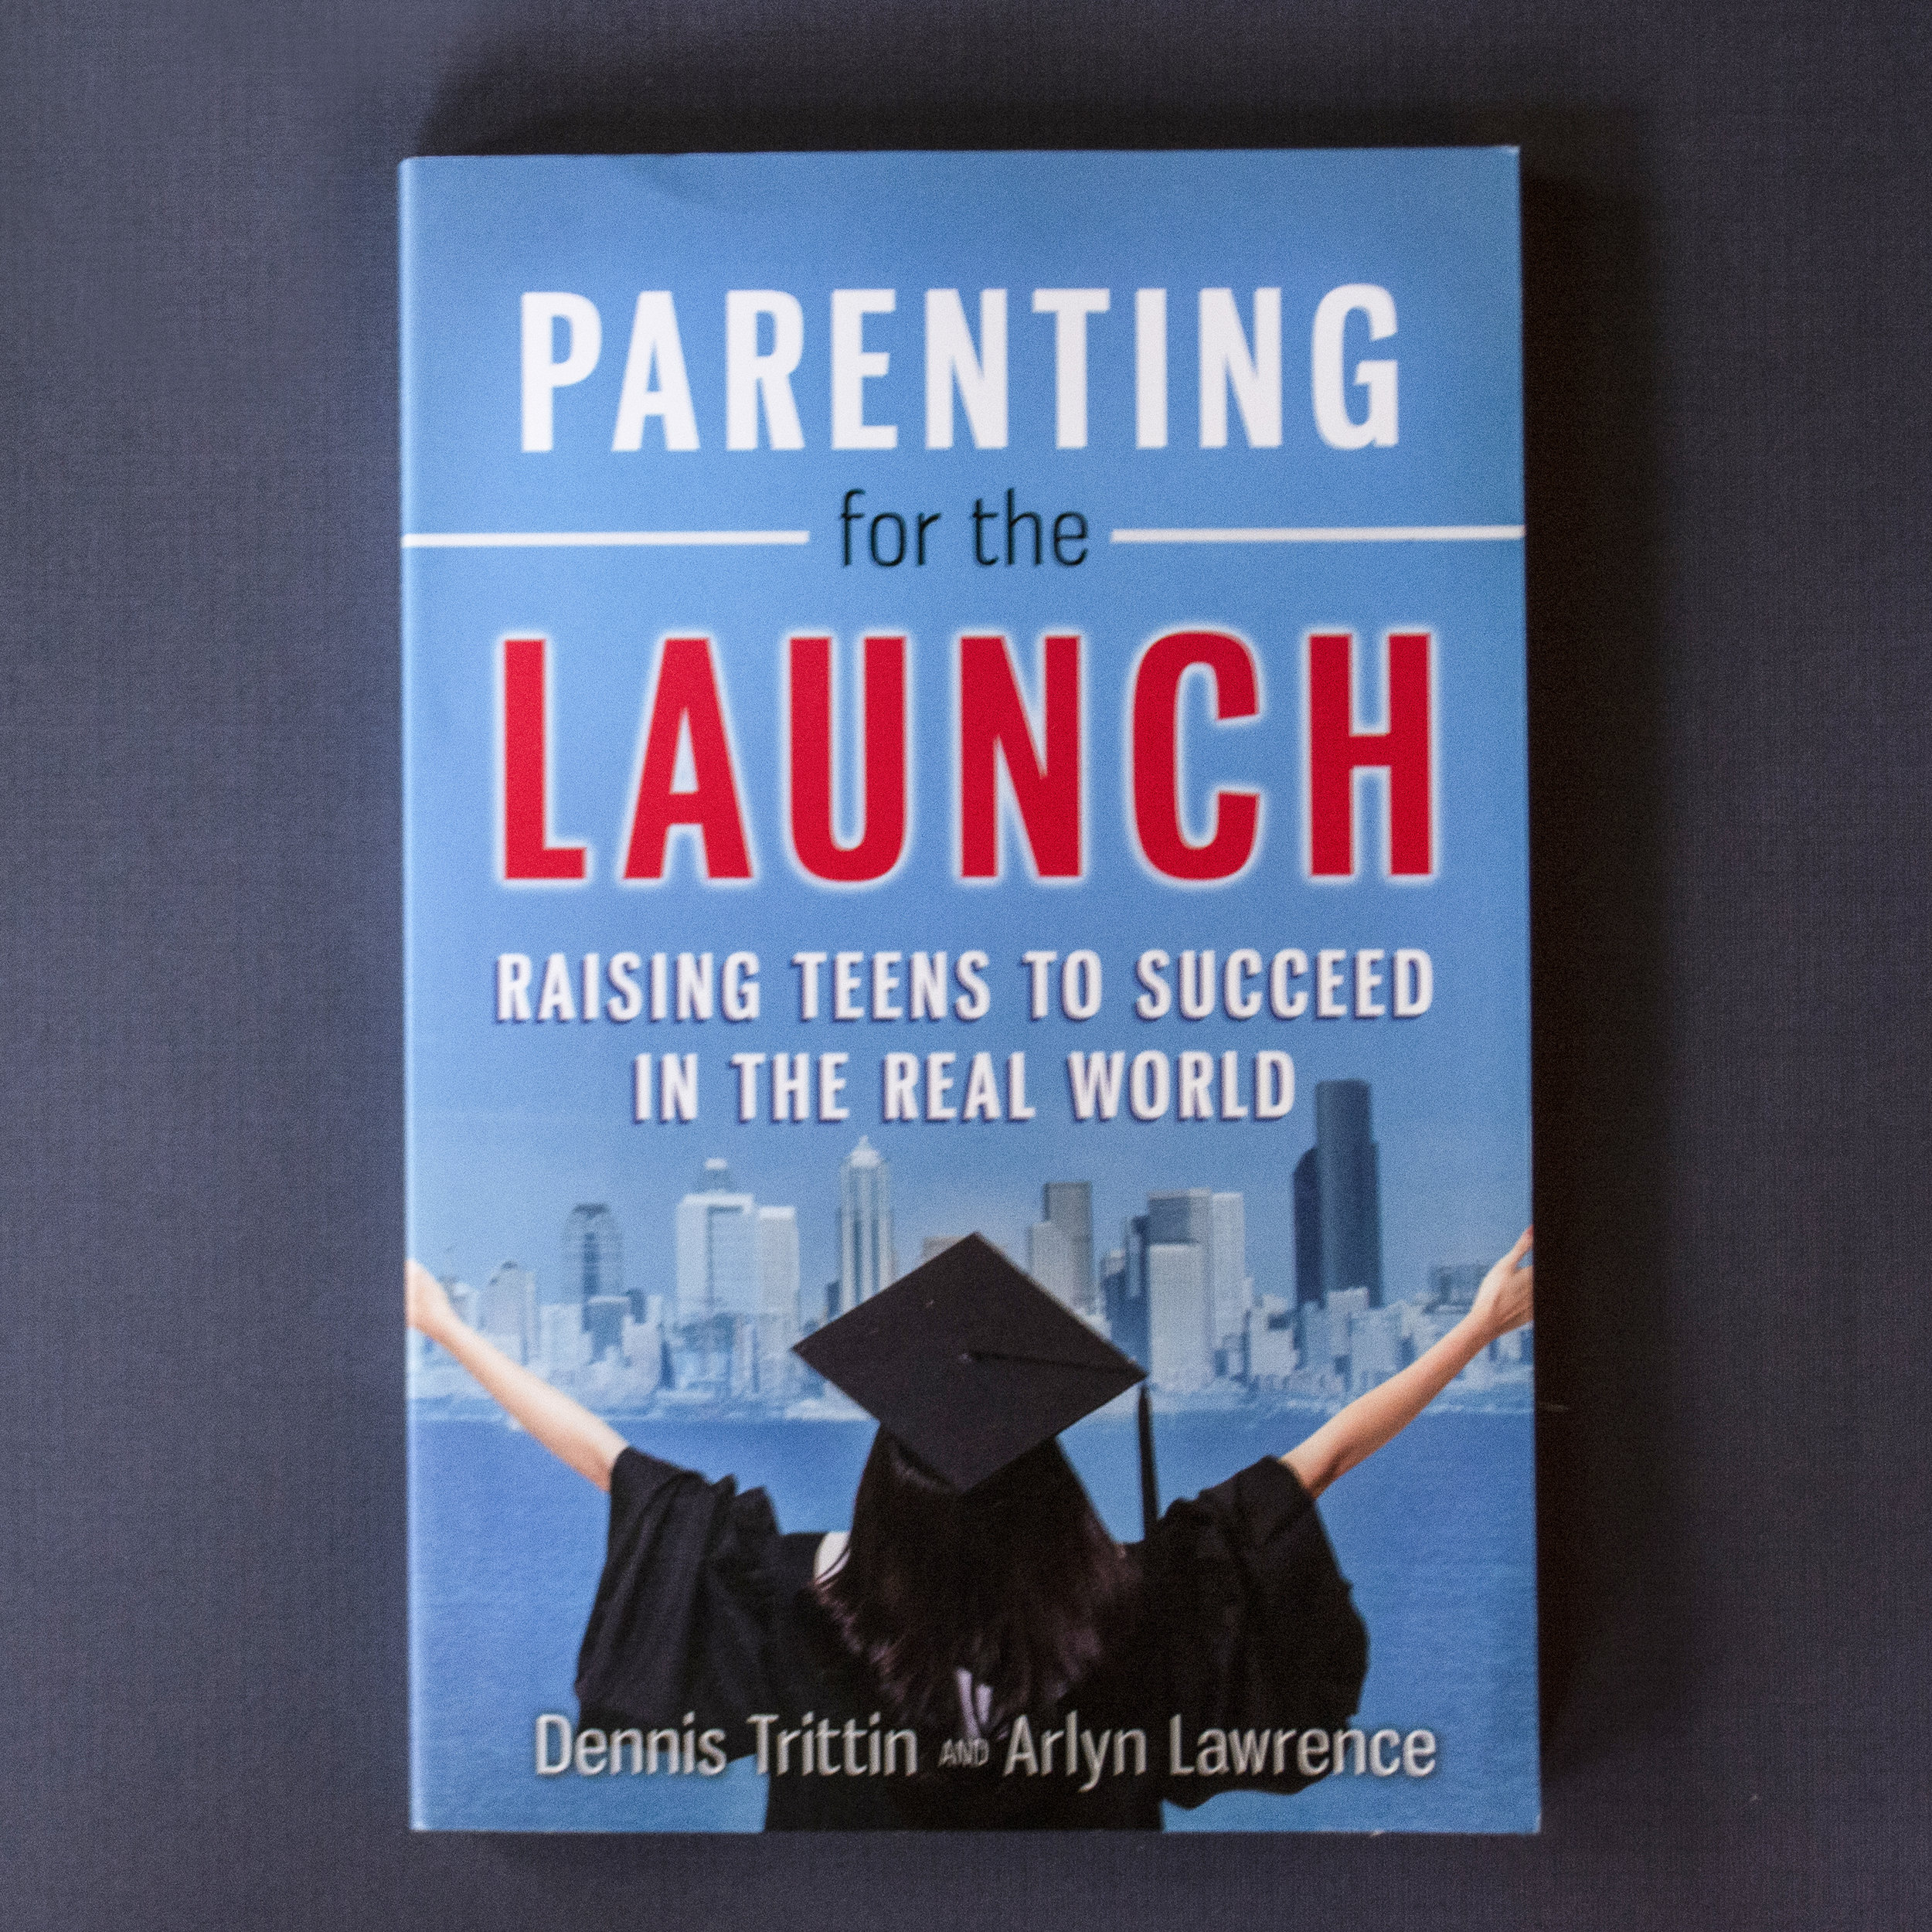 Parenting for the Launch - Dennis Trittin and Arlyn Lawrence - One minute they're playing with Legos, the next they're asking for the car keys, and the next … they've graduated and are out the door! This should not be a time of anxiety; it should be a time of preparation and anticipation! In Parenting for the Launch, you'll find innovative strategies that will help you prepare your teen to soar in adulthood.Parenting for the Launch is designed to help parents grow in their understanding, effectiveness, and confidence in preparing their teens for a successful launch. It is filled with principles, strategies, thought-provoking questions and exercises to guide today's parent. It also offers the invaluable perspectives and desires of employers and educators who are working with young adults--